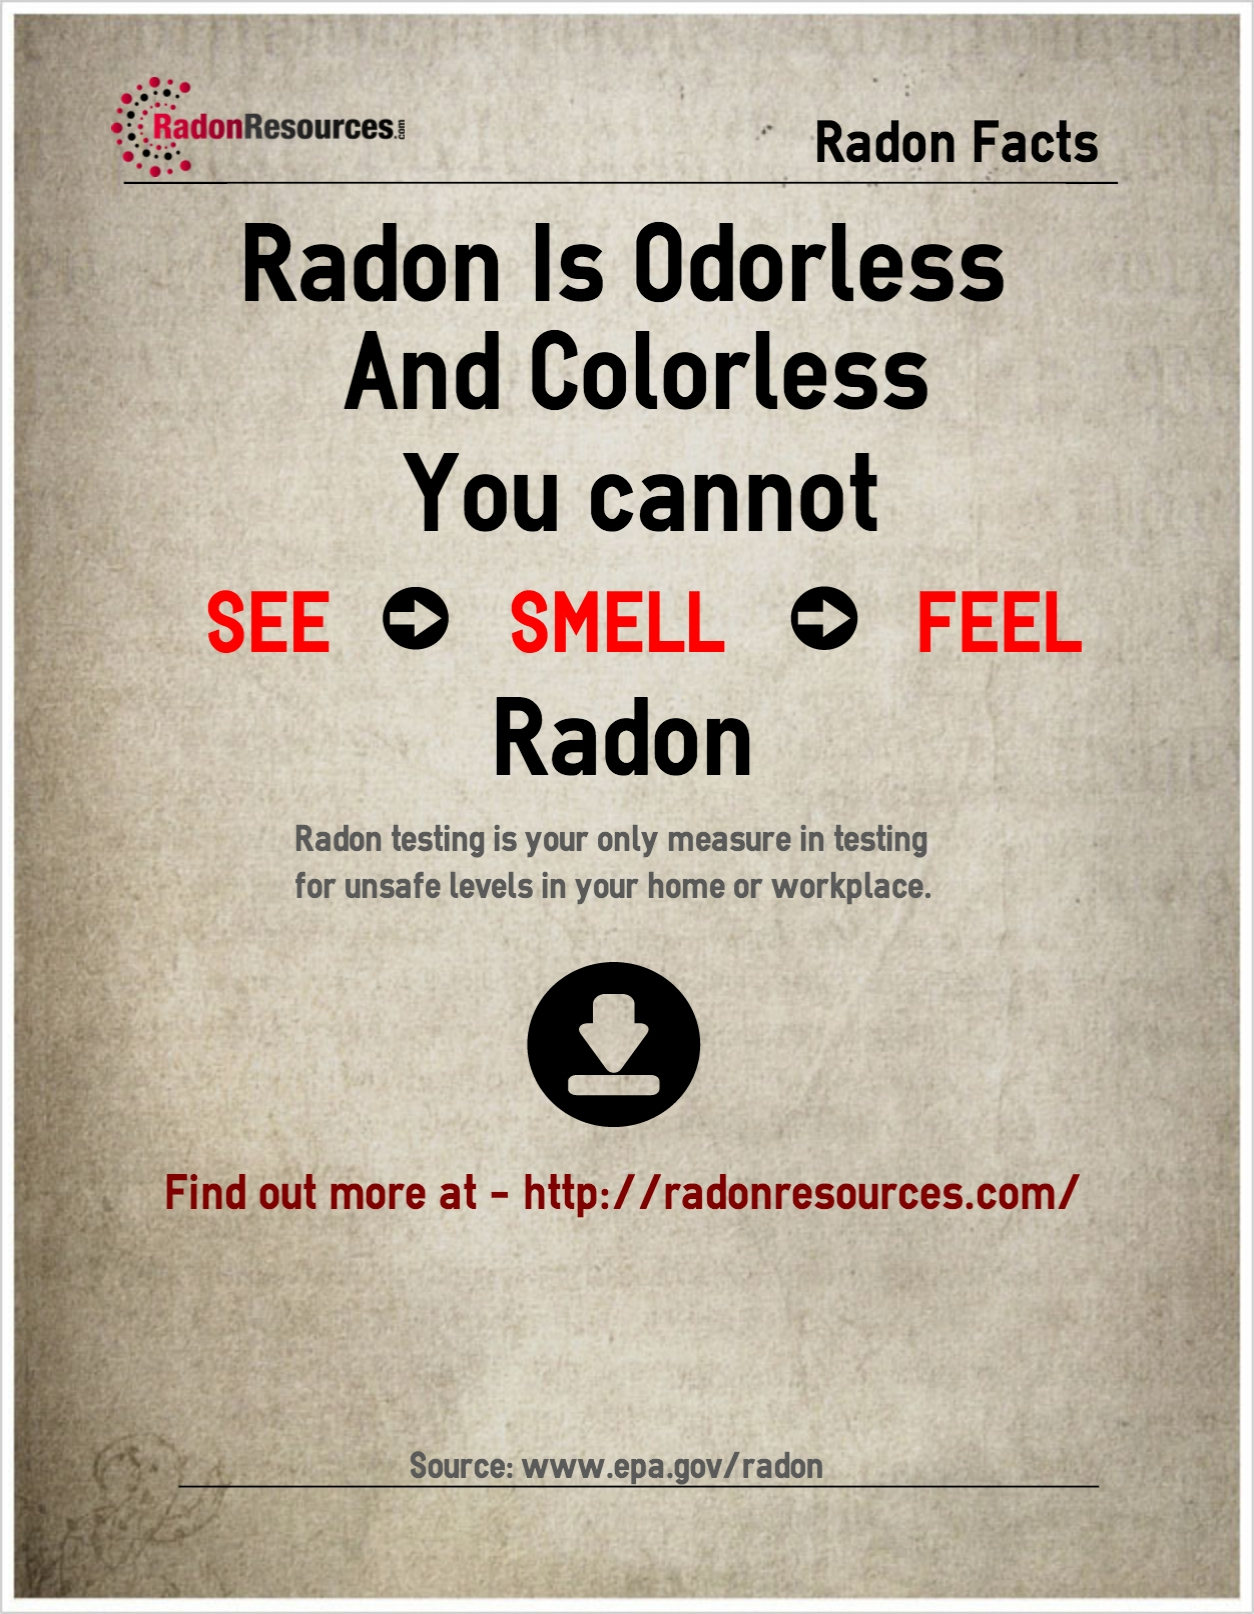 Radon is odorless and colorless. You cannot see, smell or feel radon gas